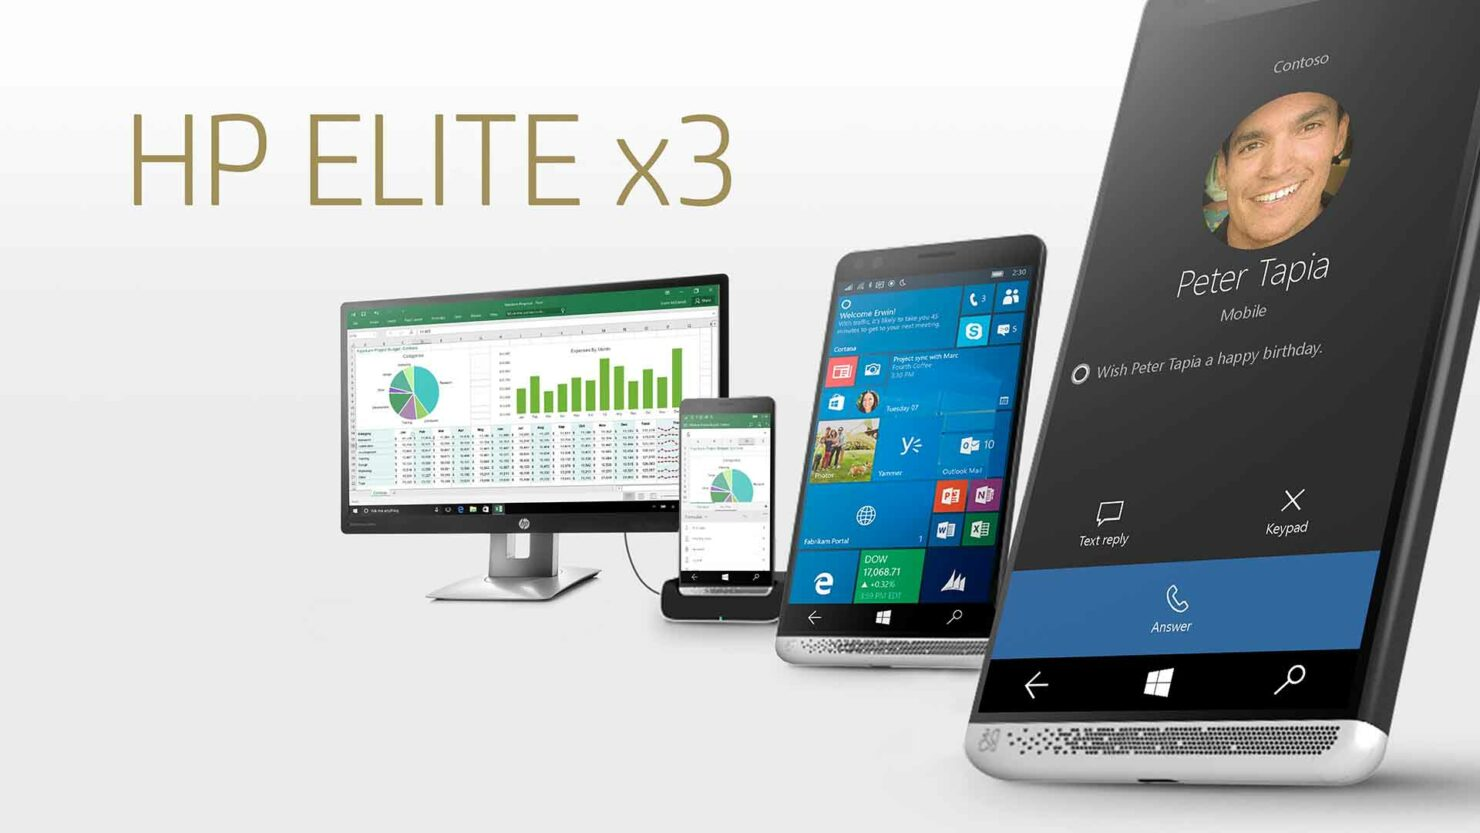 HP Elite x3 out of stock US